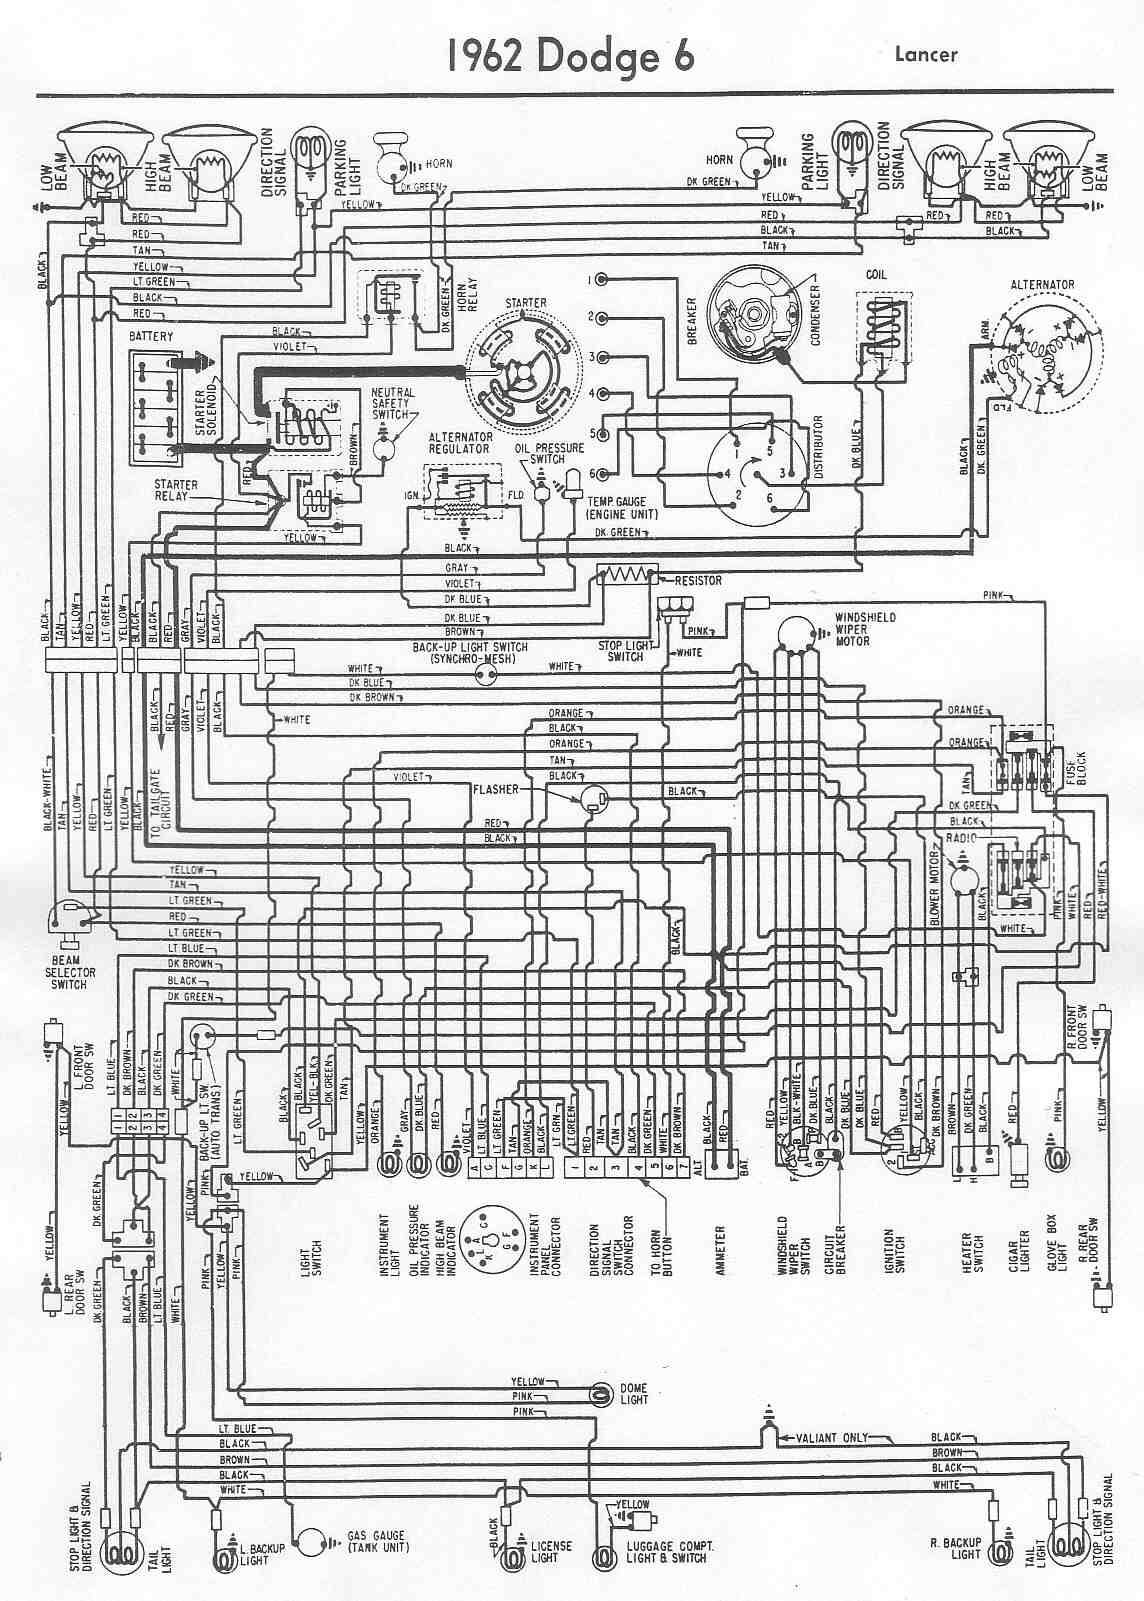 dodge car manuals, wiring diagrams pdf & fault codes complete body wiring  diagram of dodge po jpg image 75 4 kb download � download